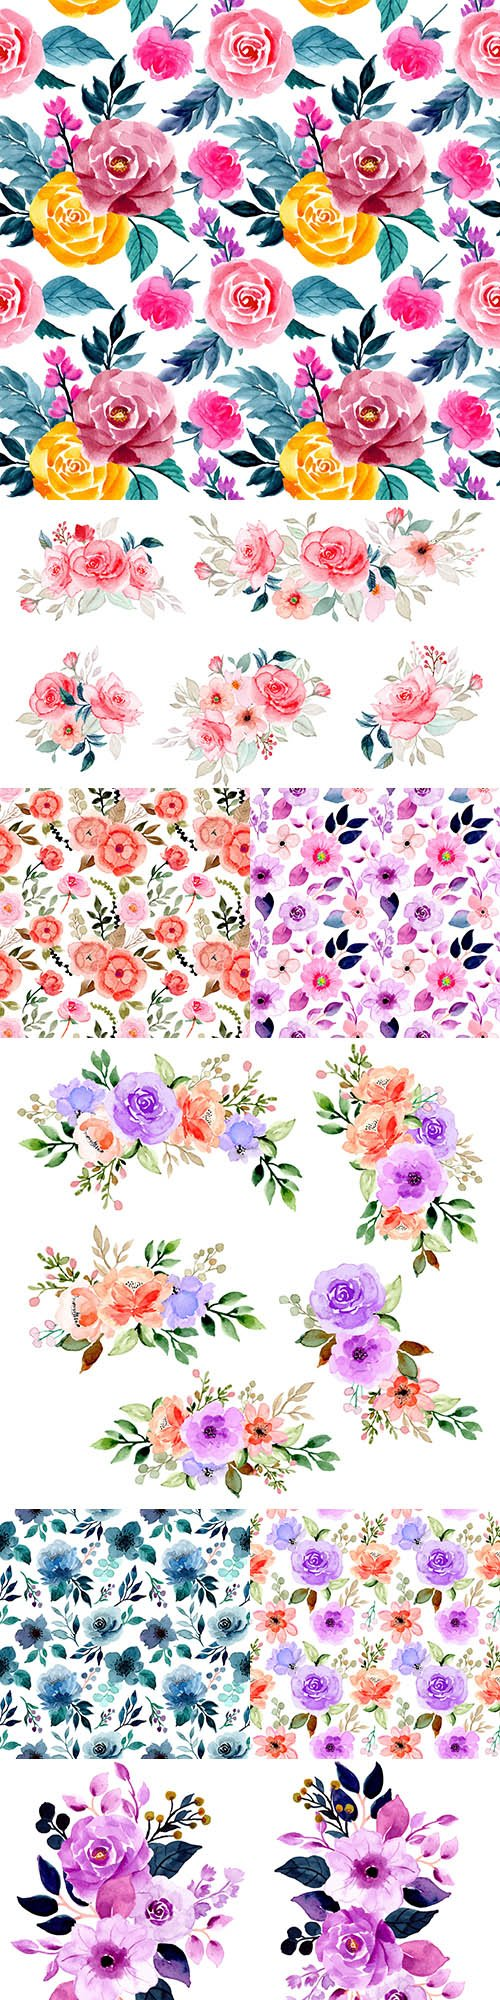 Watercolor flower composition and seamless background